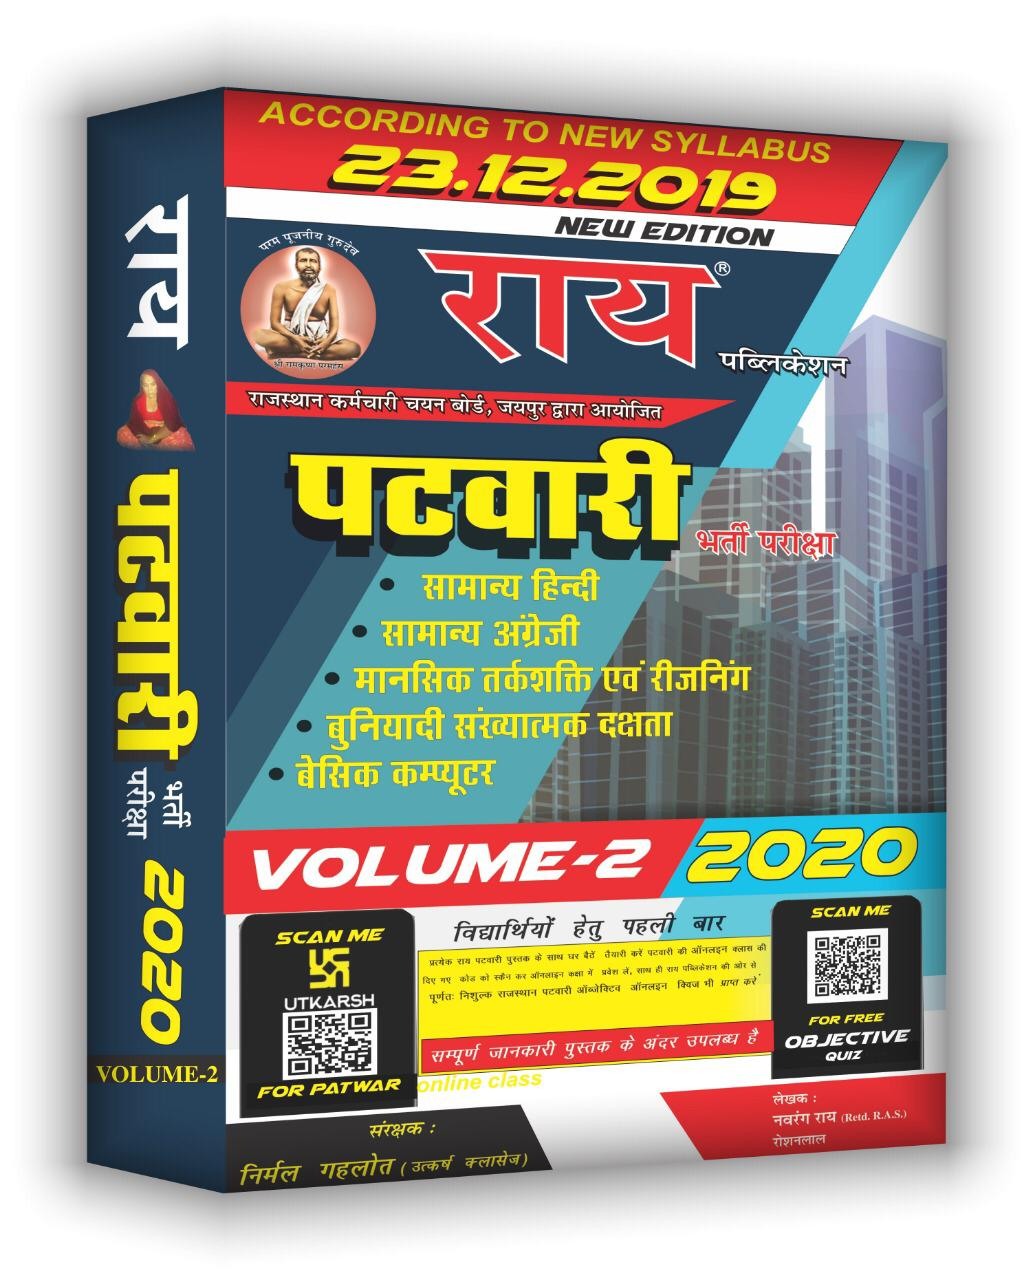 RAJASTHAN PATWARI VOLUME 2  Latest Syllabus with free online Objective Sets (General Hindi , English , Reasoning ,Quantitative Aptitude  Basic Computer )  2020 ( Patwari 2020 )( Best Book for Rajasthan Patwari )